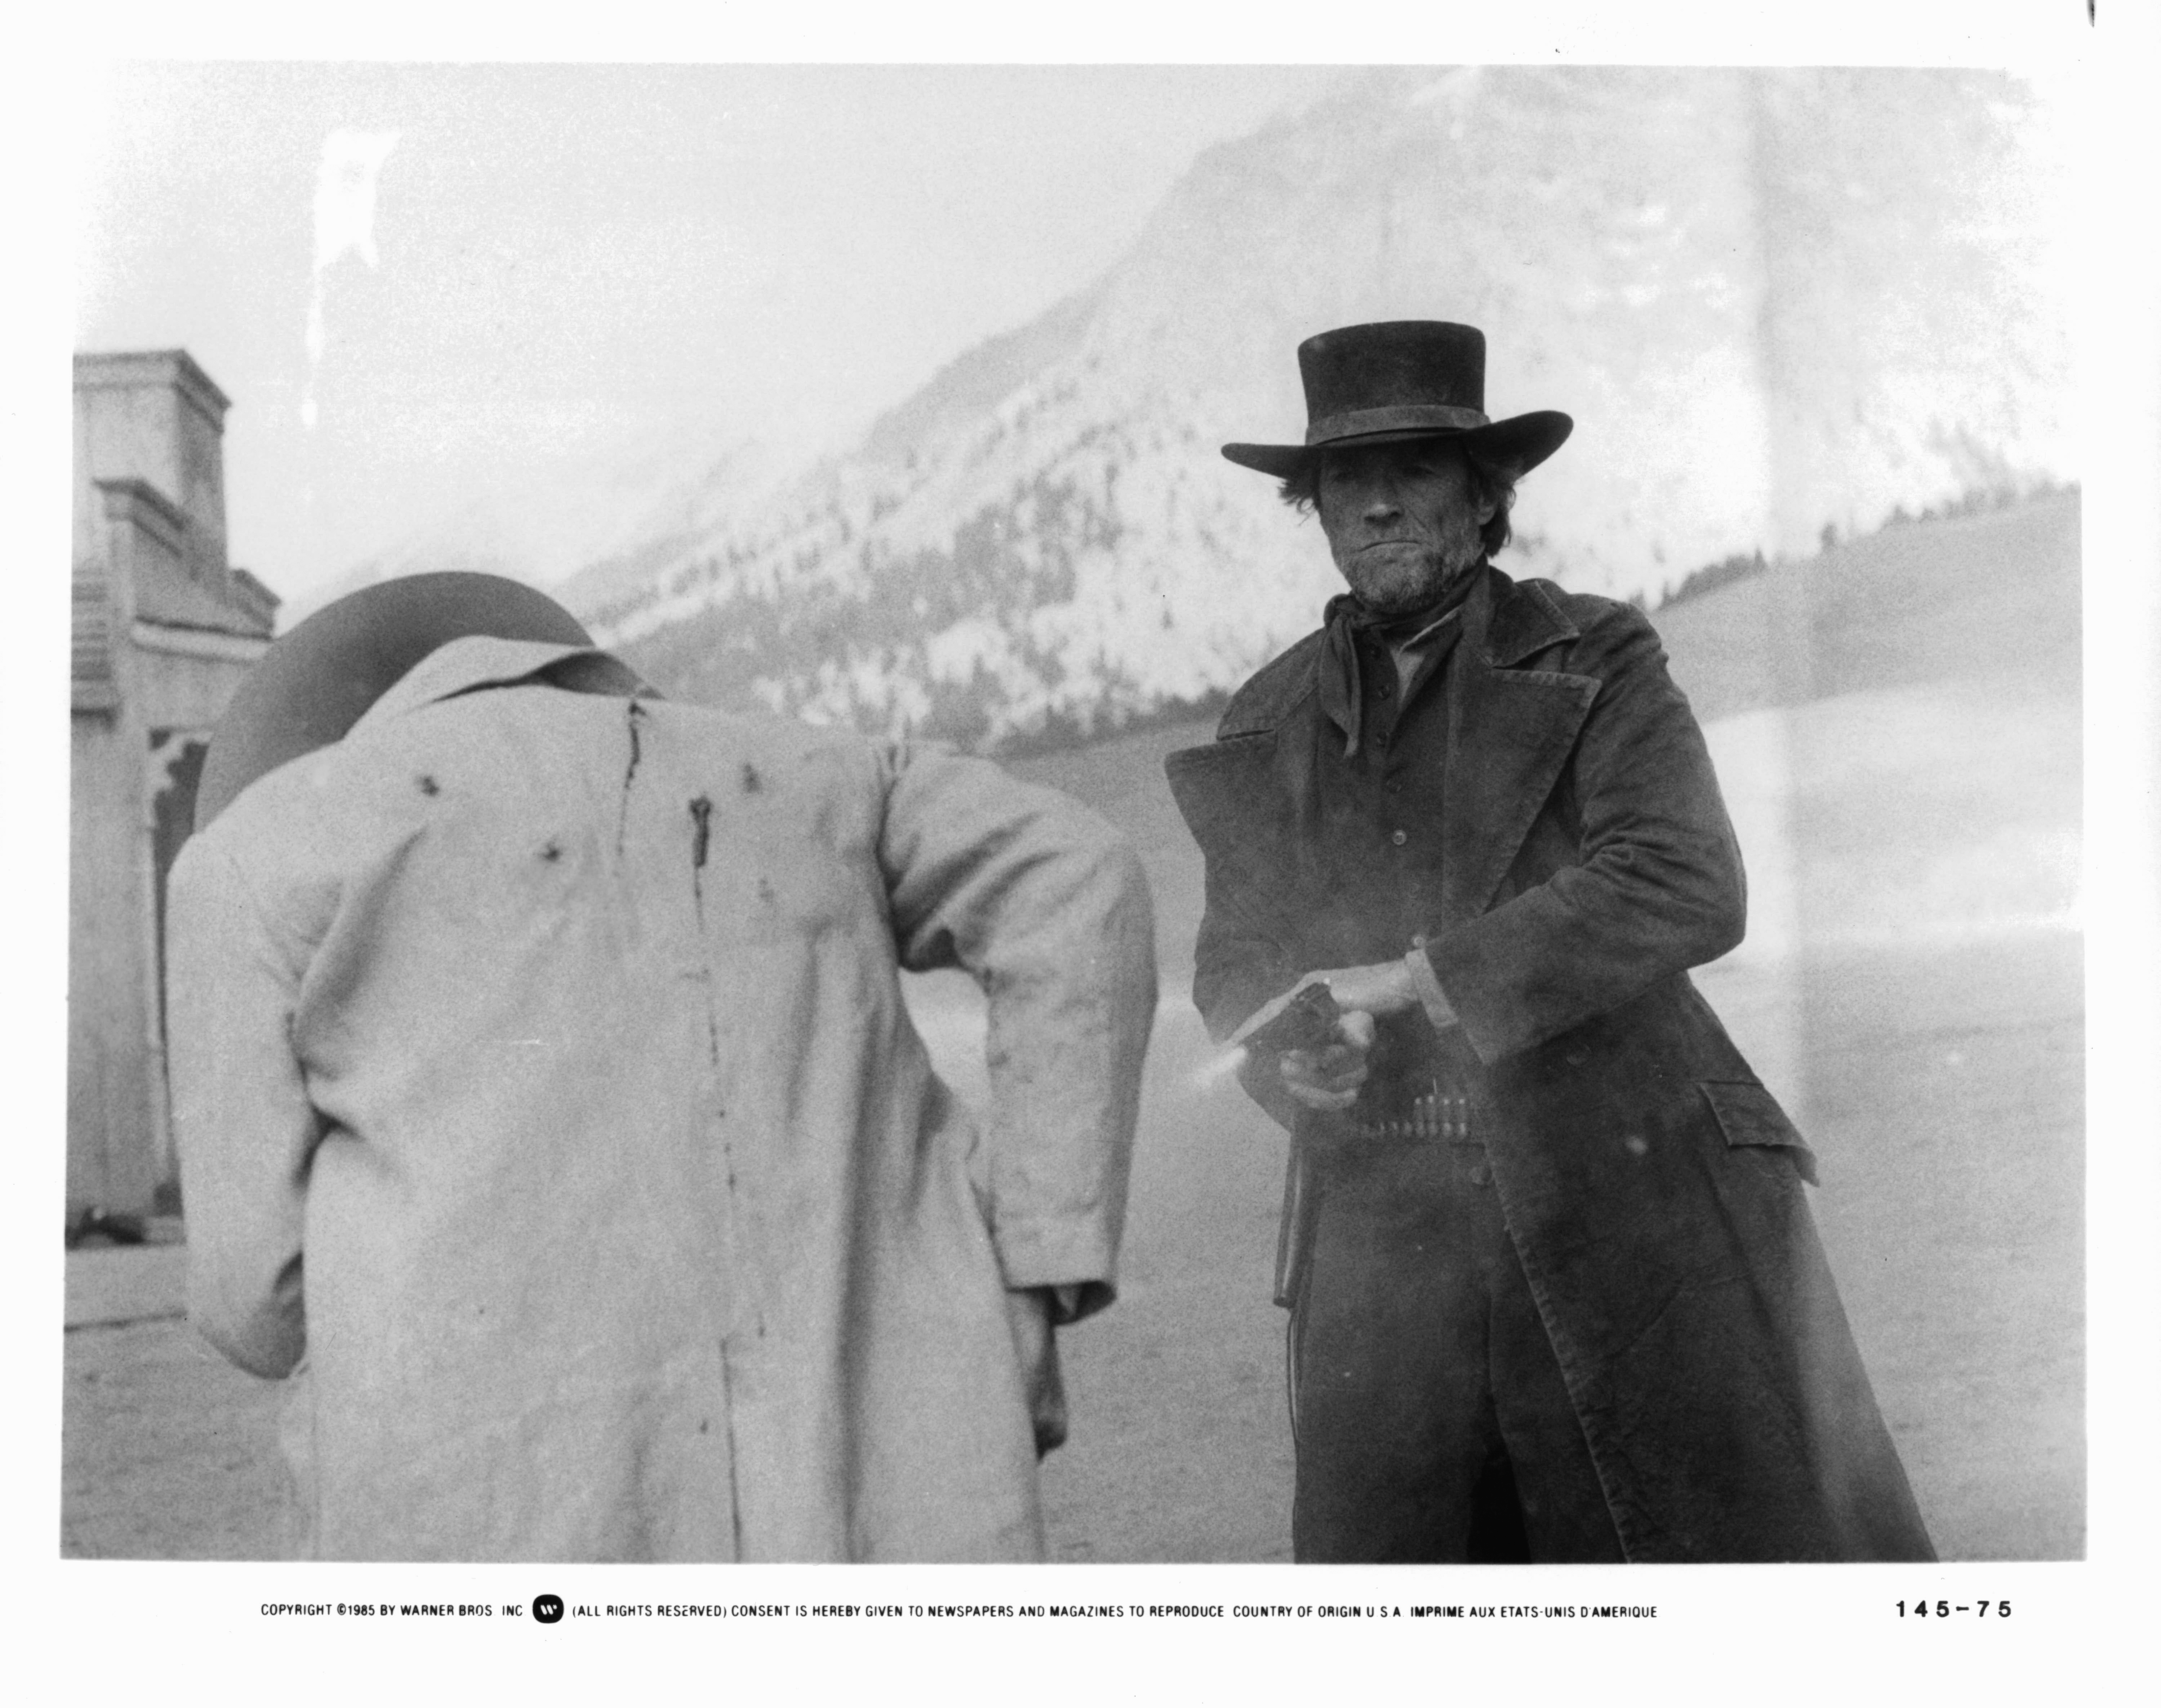 Clint Eastwood and John Russell in Pale Rider (1985)